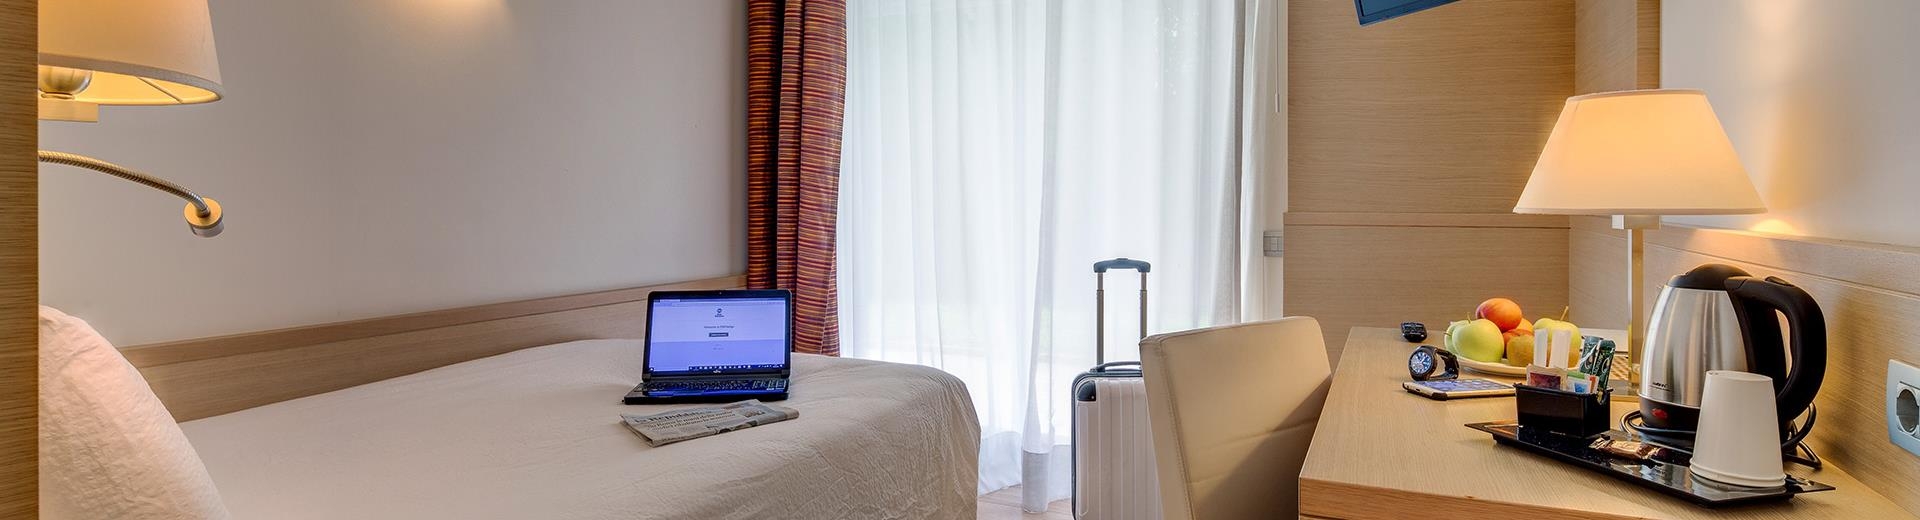 If you travel alone in Trento, enjoy the comfort of double single use of BW Hotel Adige: French bed and many amenities at your disposal. Book now!